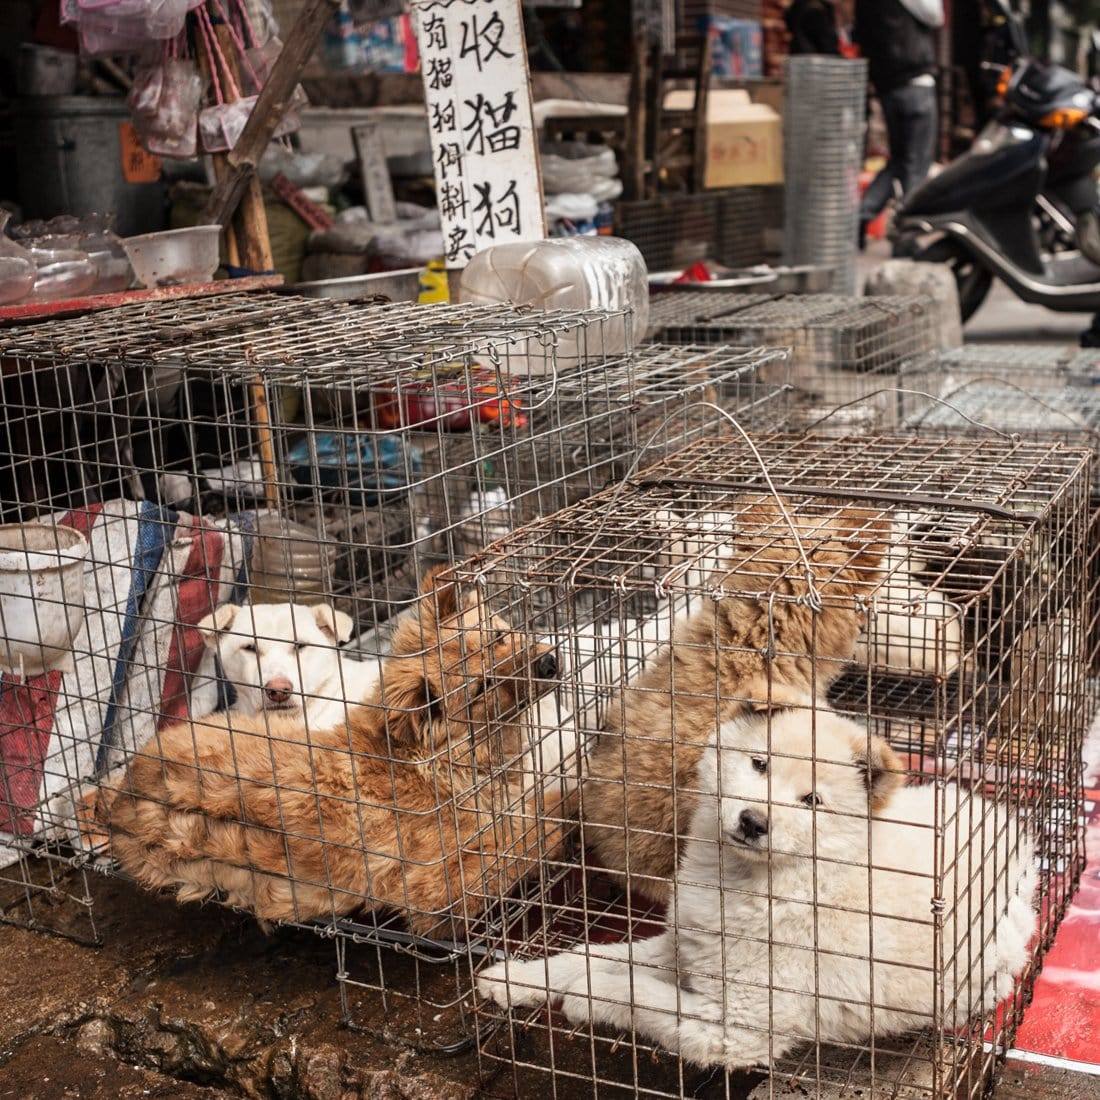 dog Meat market china dogs in cages